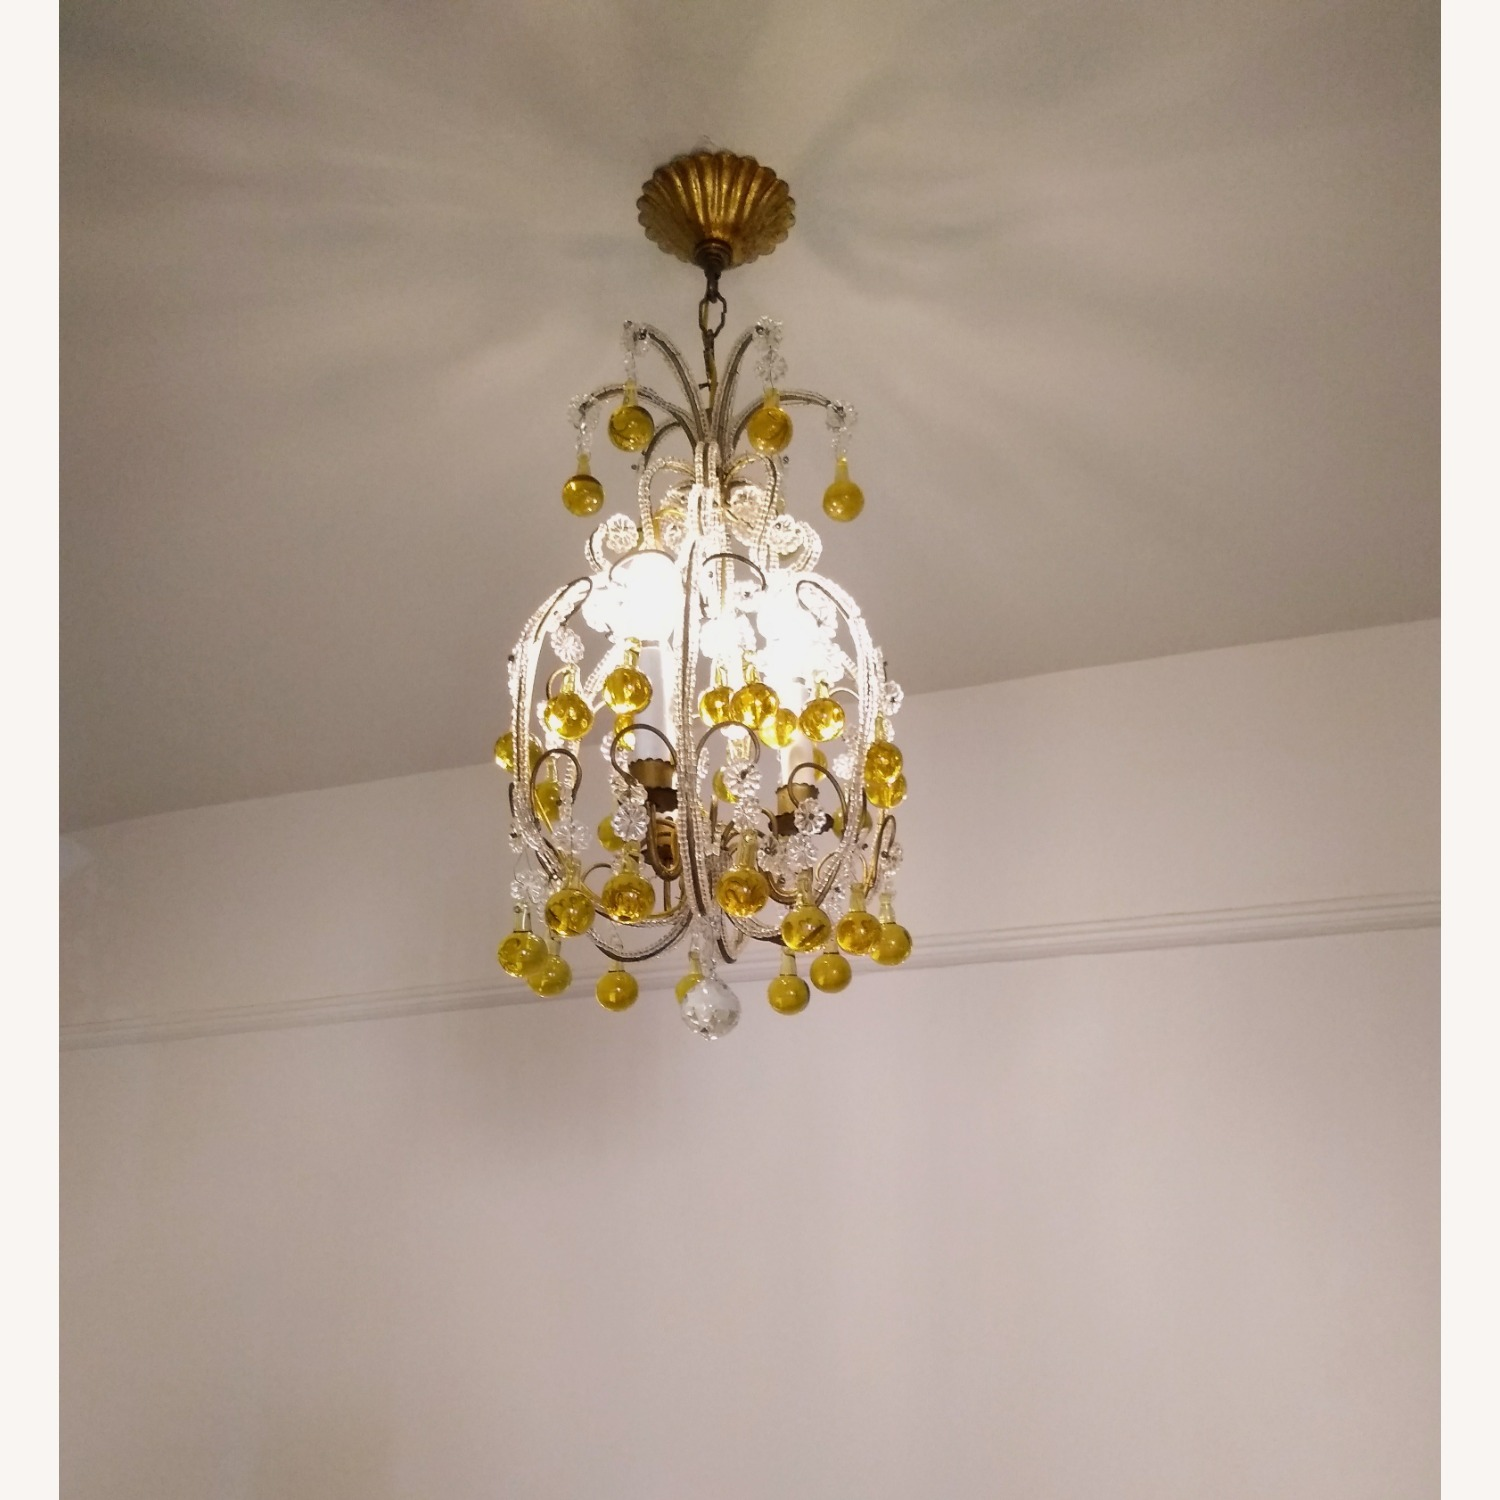 Vintage French Chandelier, Murano Drops - image-1